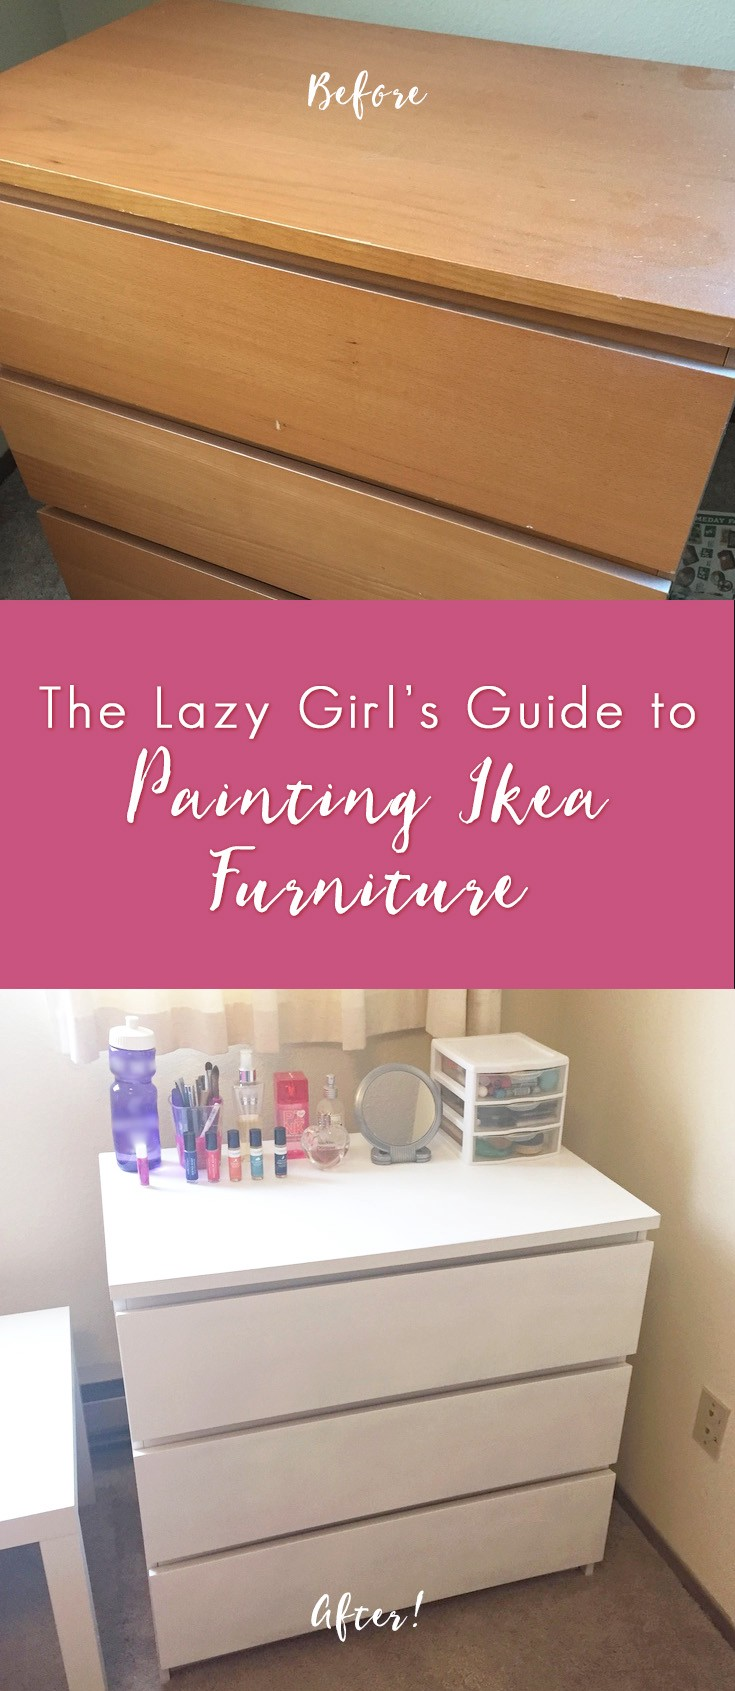 The Lazy S Guide To Painting Ikea Furniture